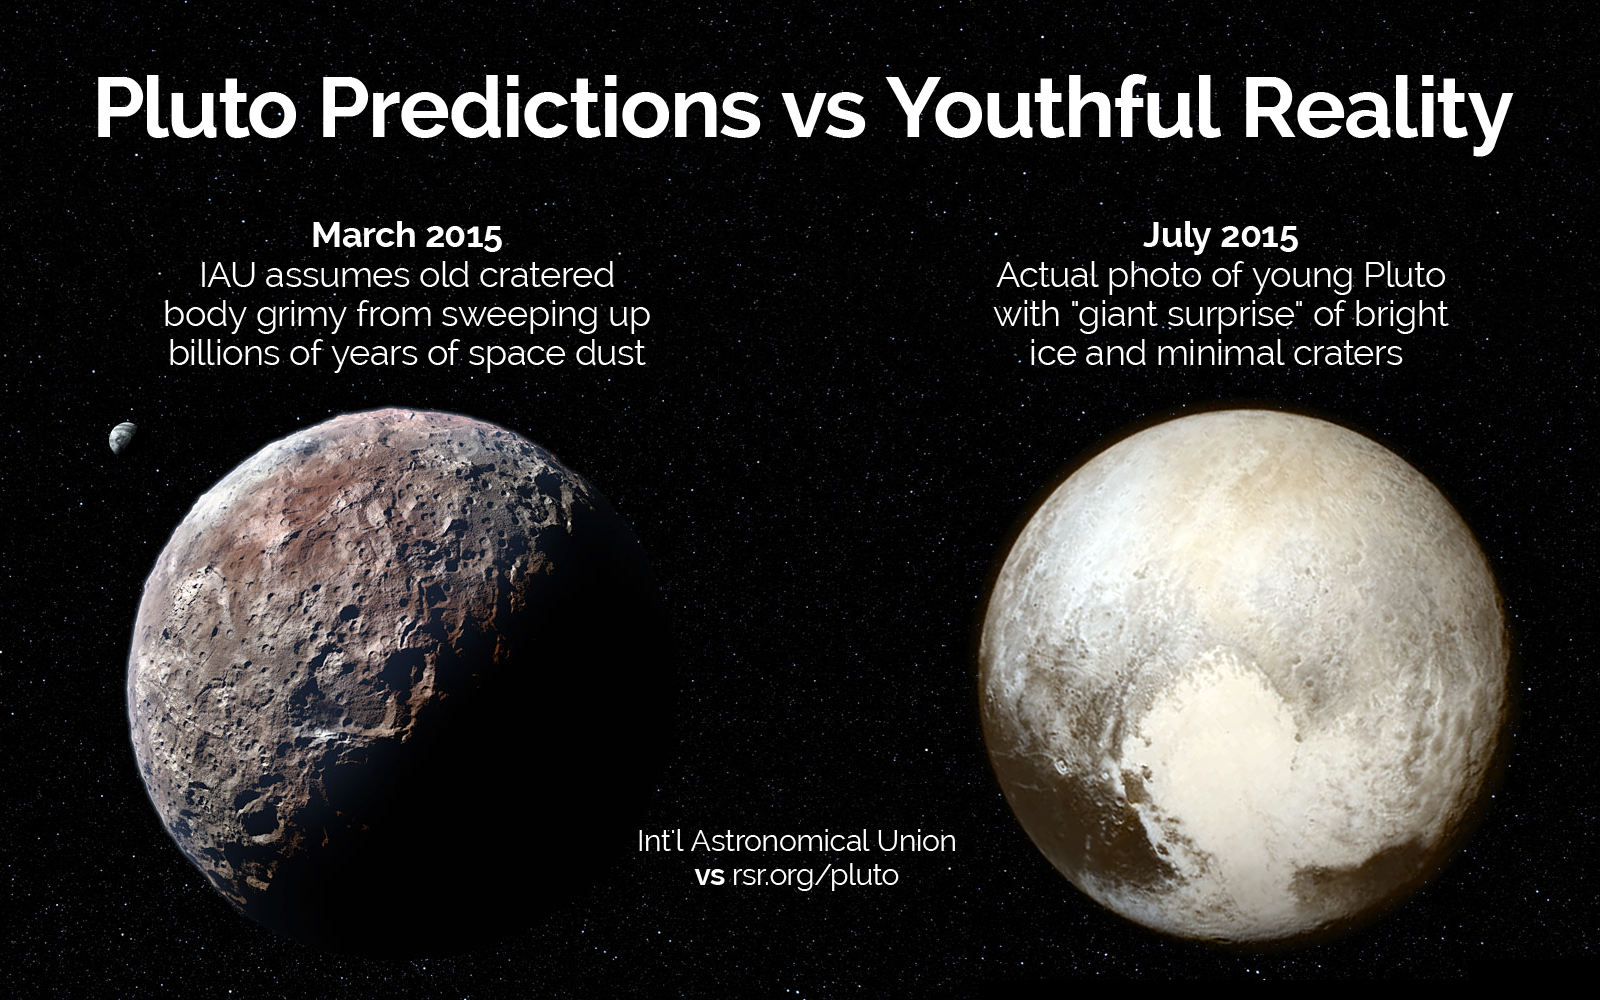 Contrast expected old-age appearance of Pluto with its actual look